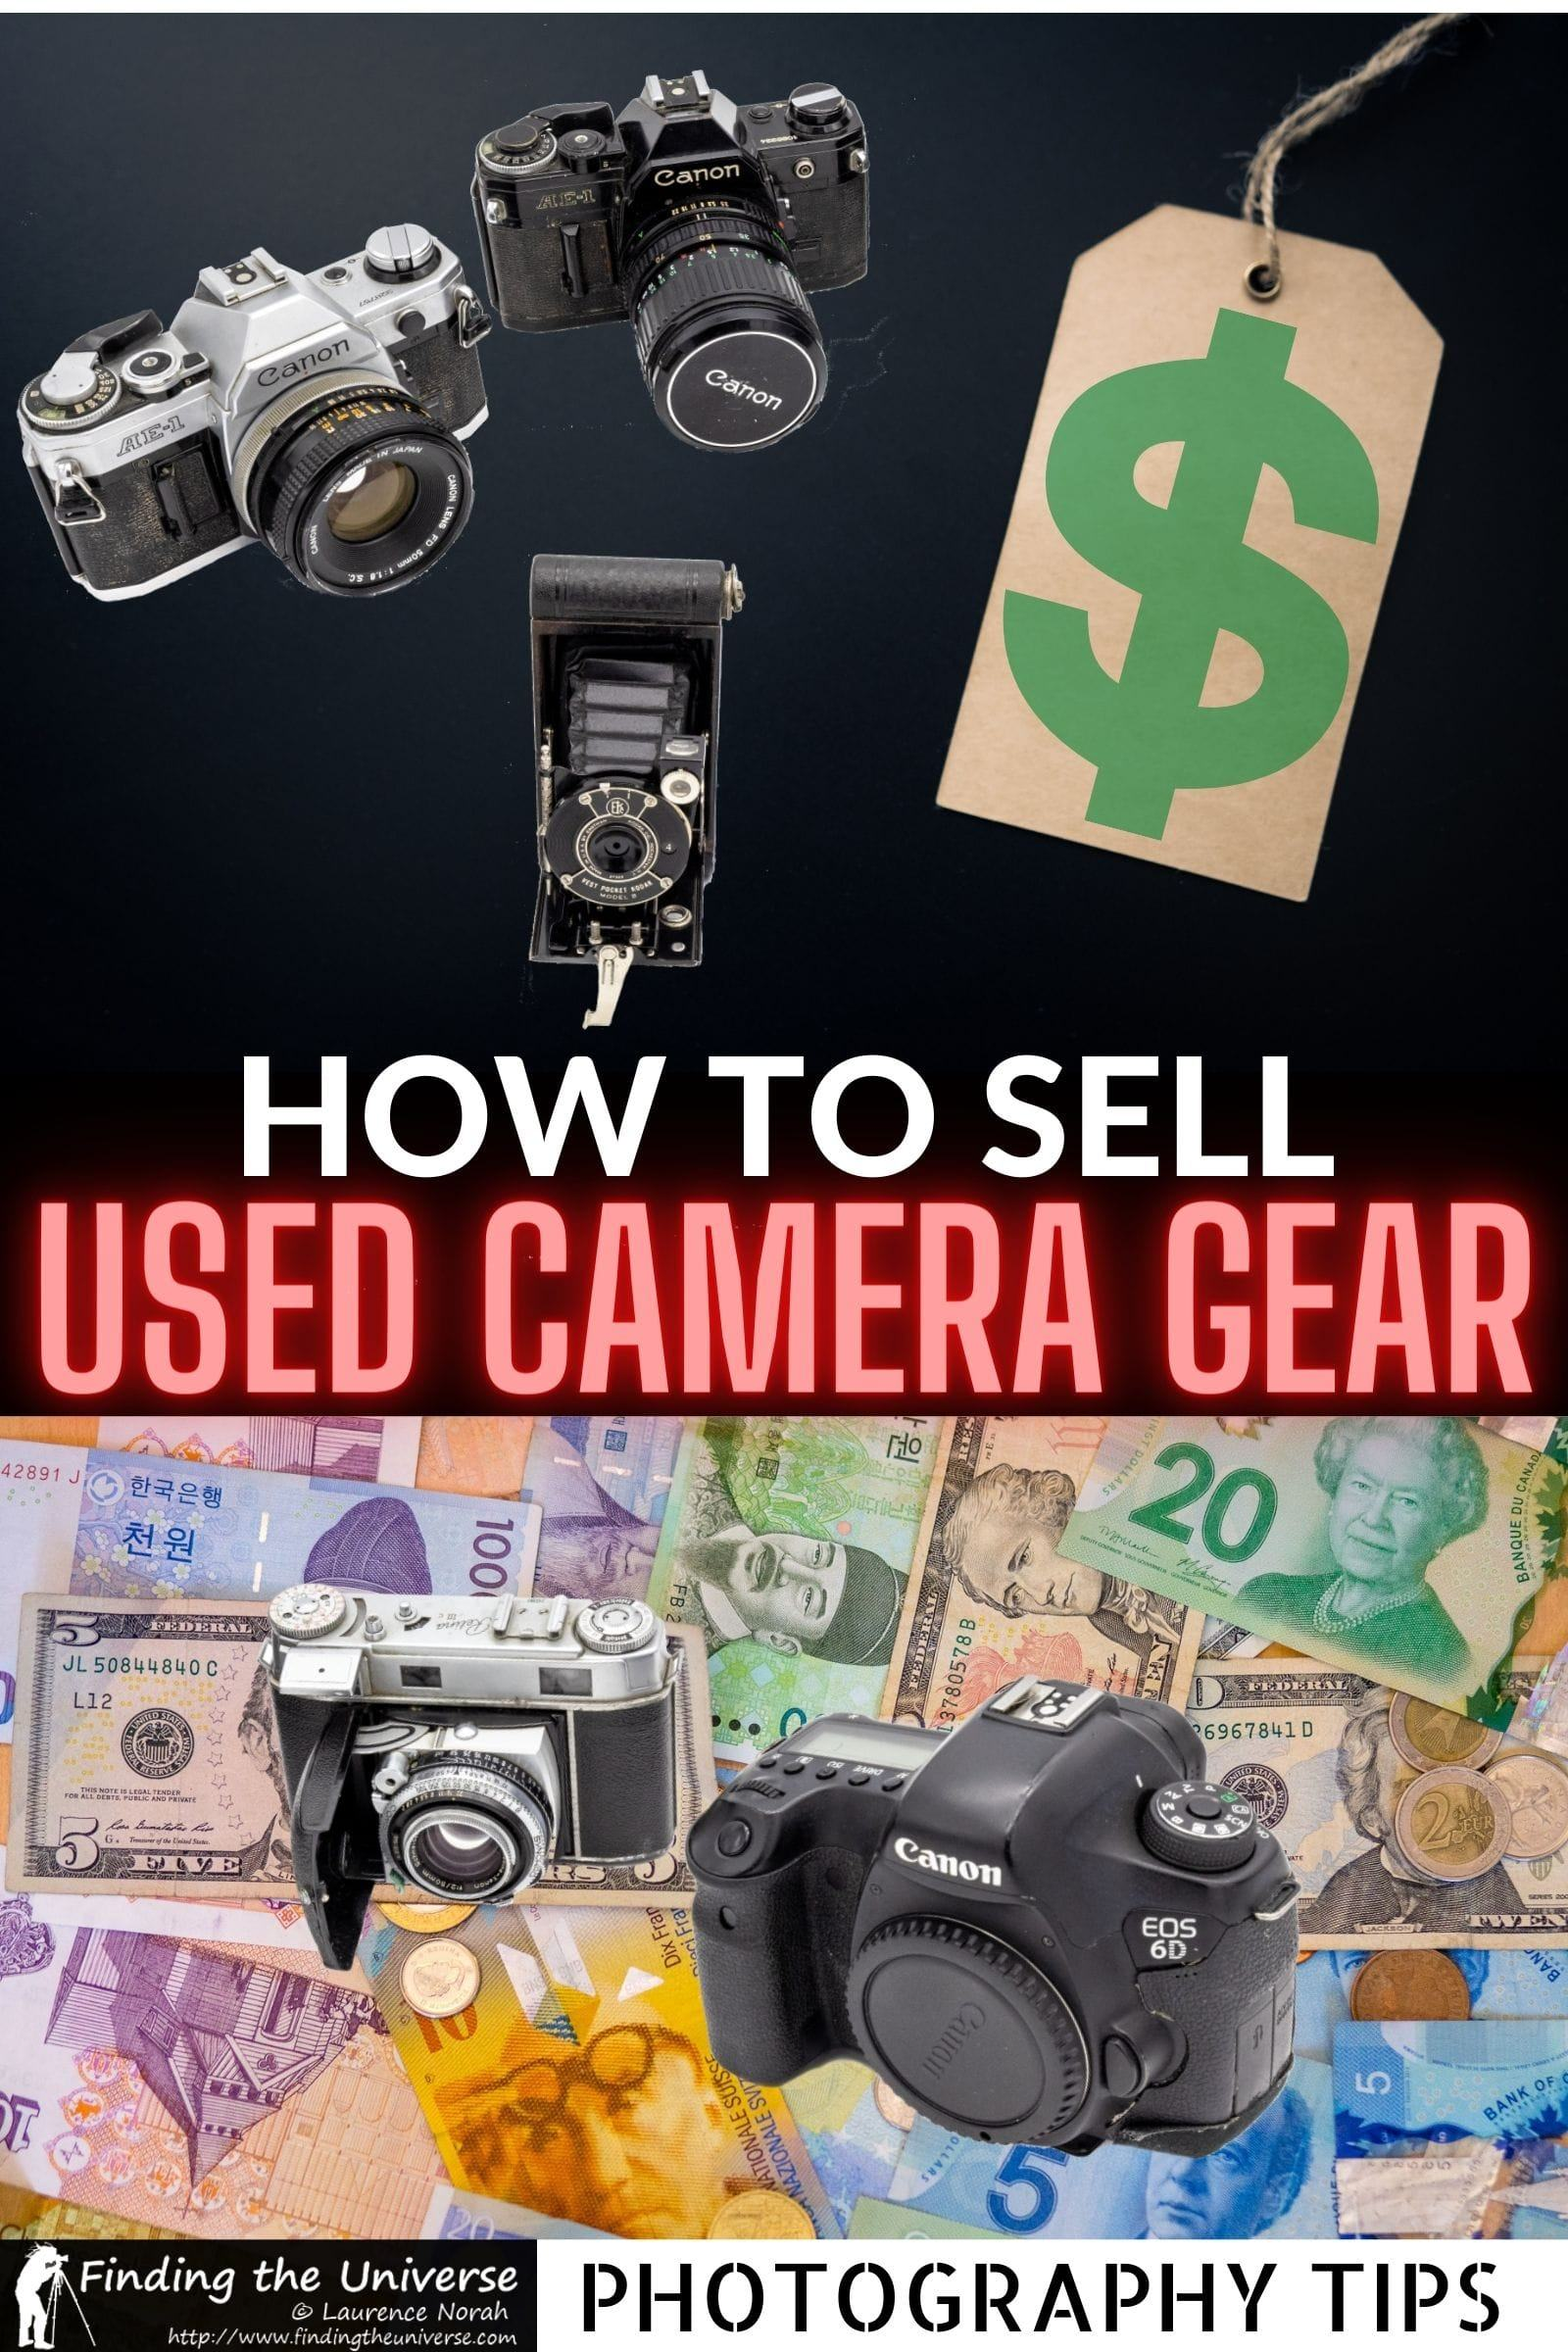 A guide to where to sell used cameras, as well as used lenses and other photography gear. All the options plus tips on selling used equipment